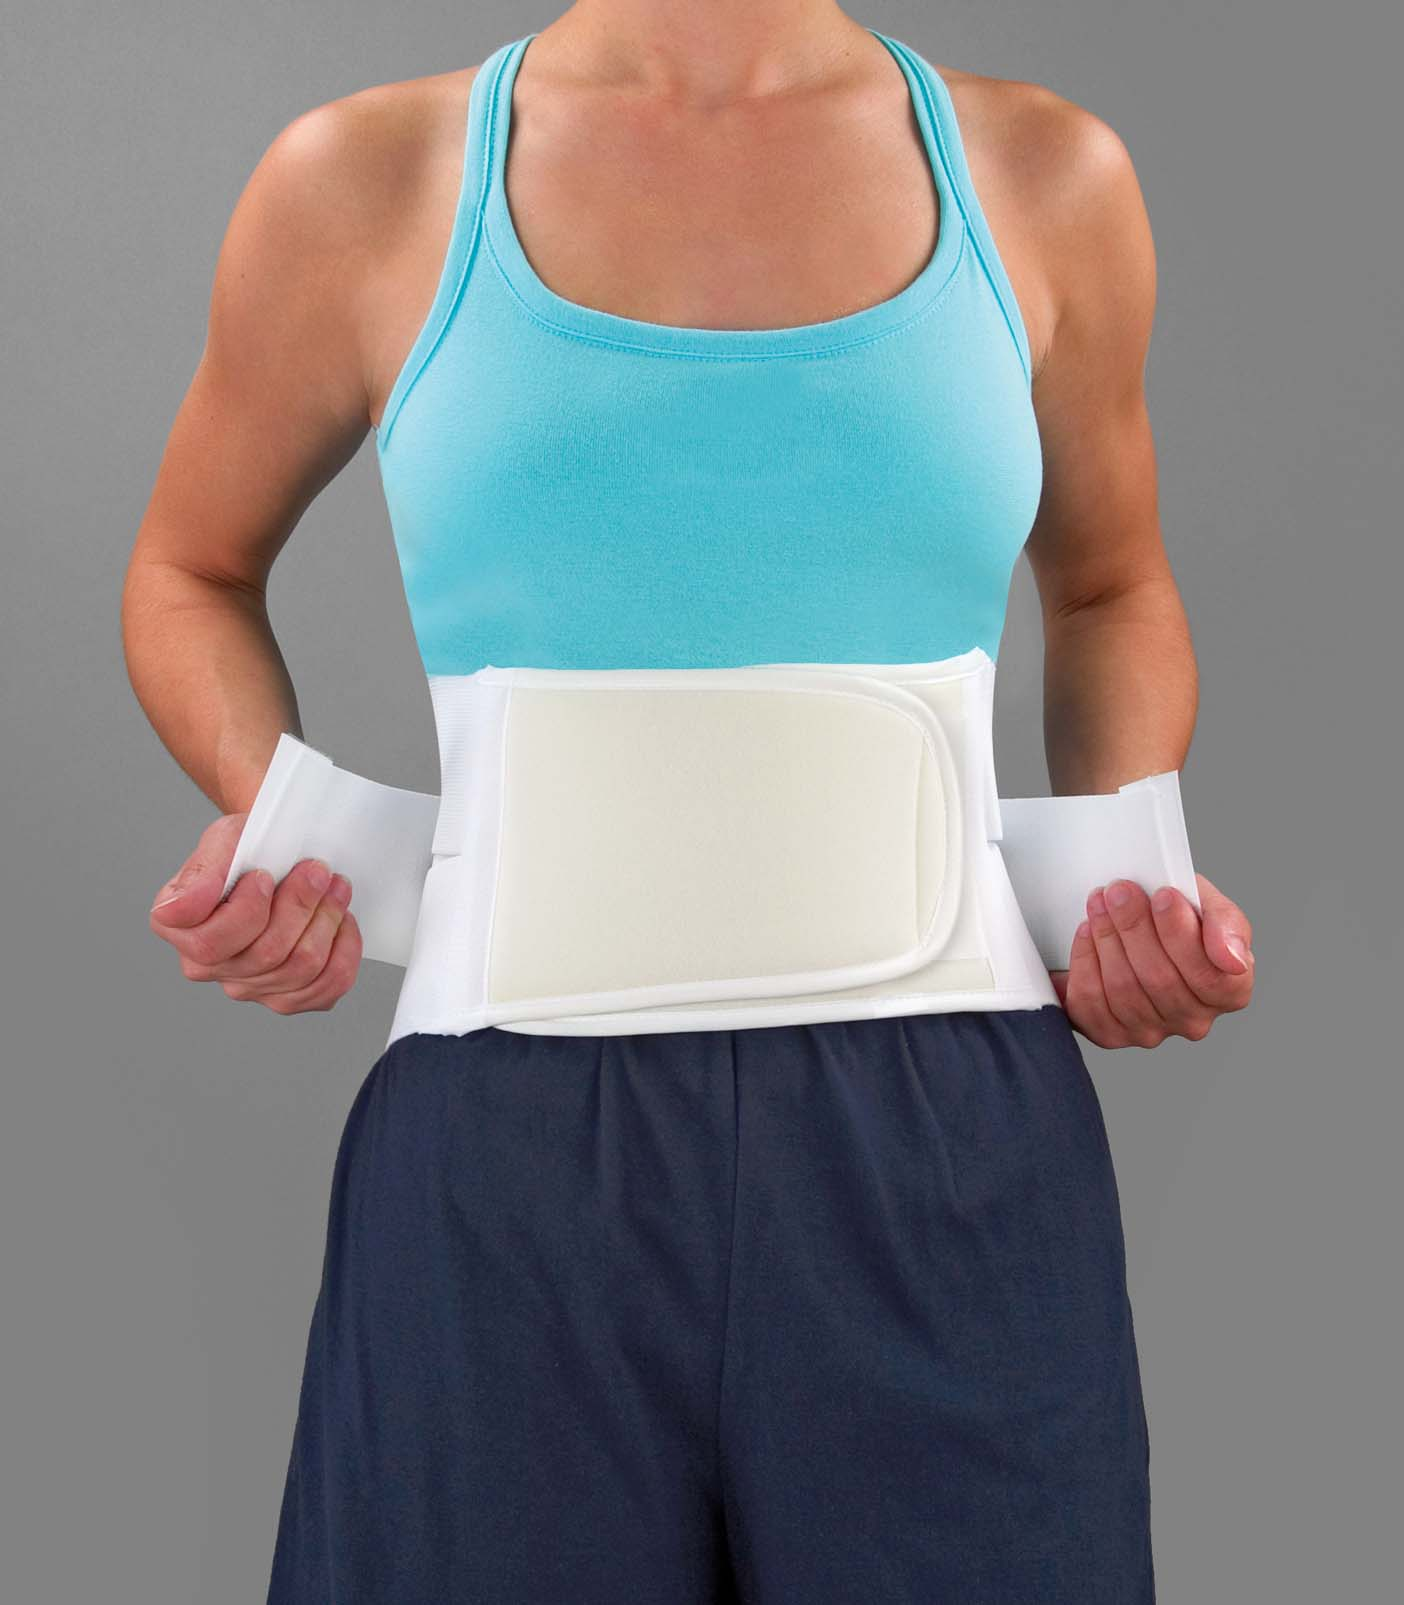 thermal-sacral-brace-w-thermal-pad-632-2044-1900-lr-2.jpg